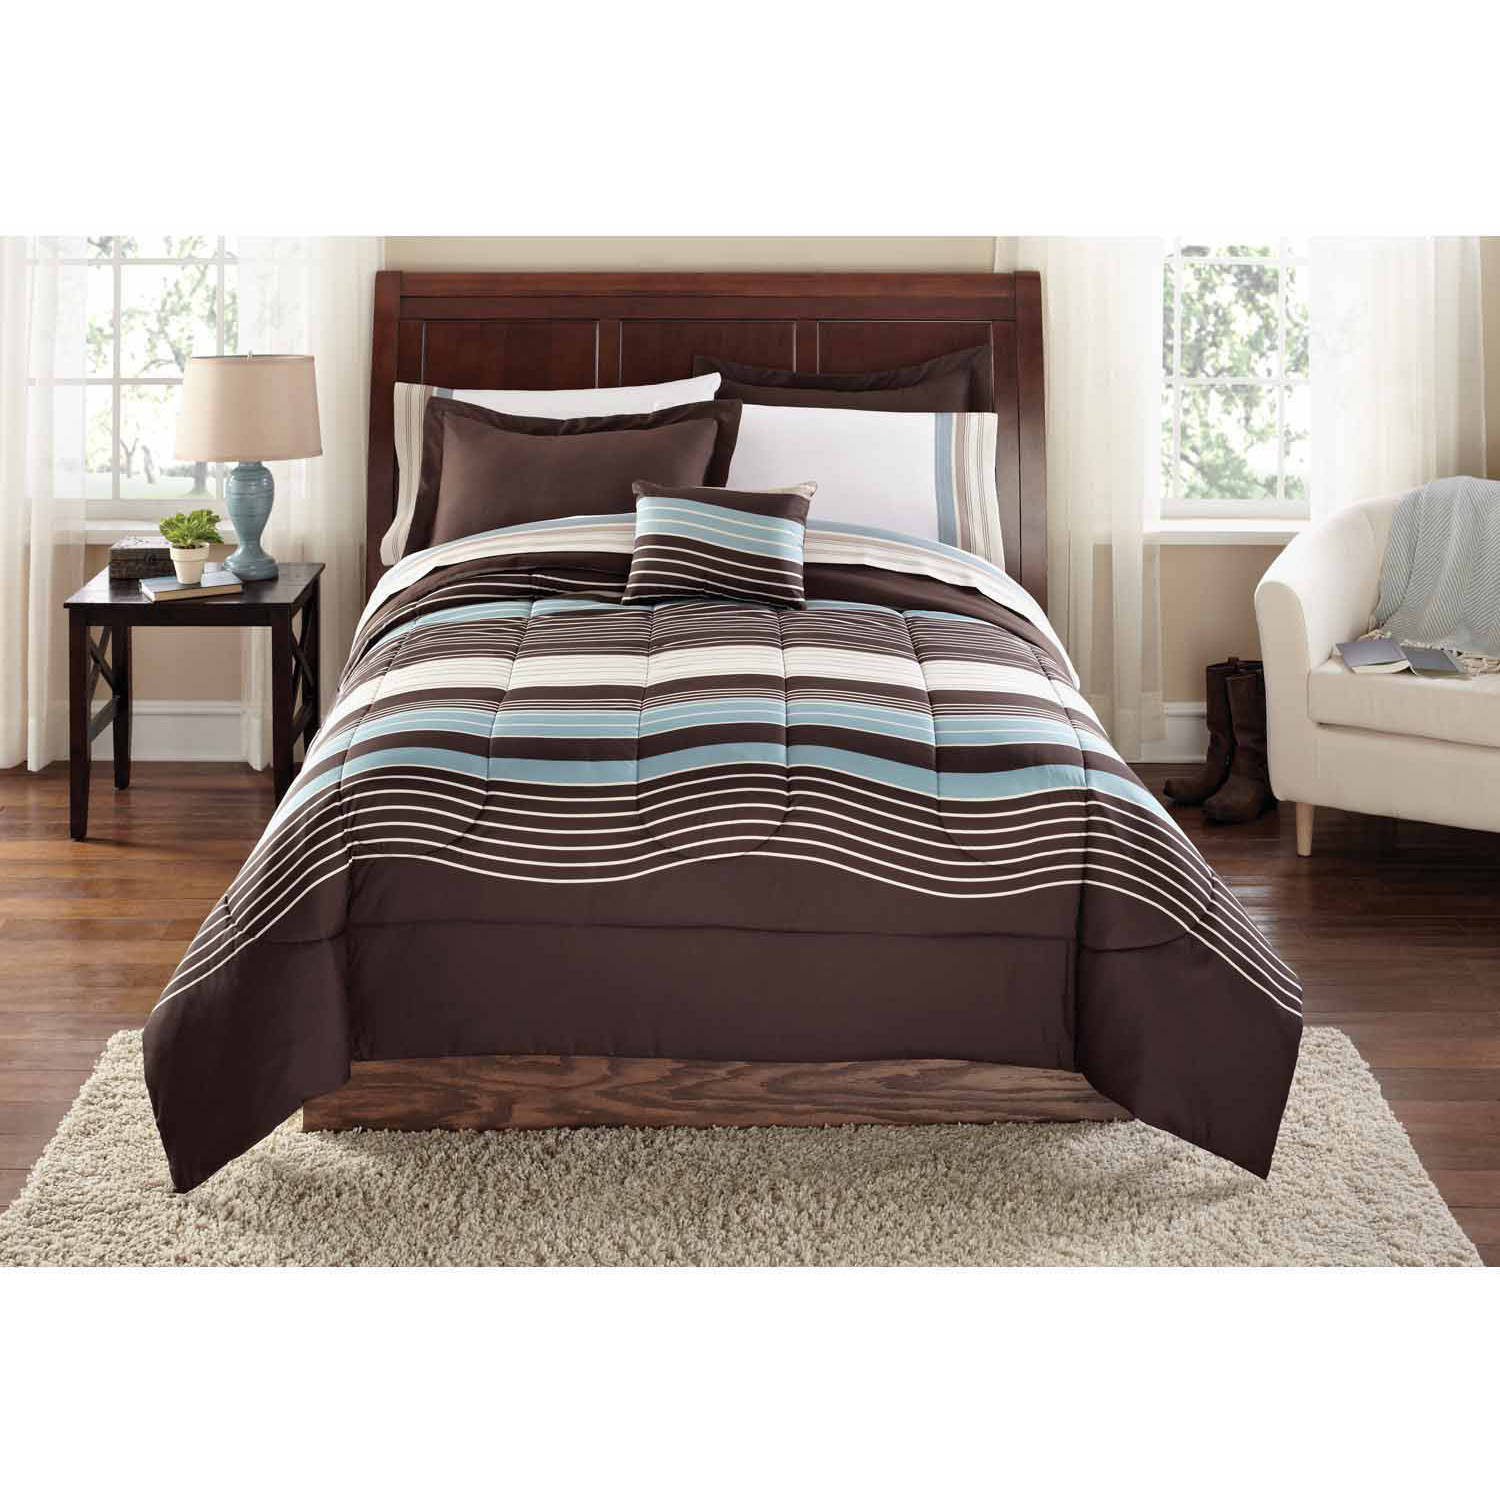 Brown bedding sets queen - Mainstays Ombre Coordinated Bedding Set With Bedskirt Bed In A Bag Walmart Com